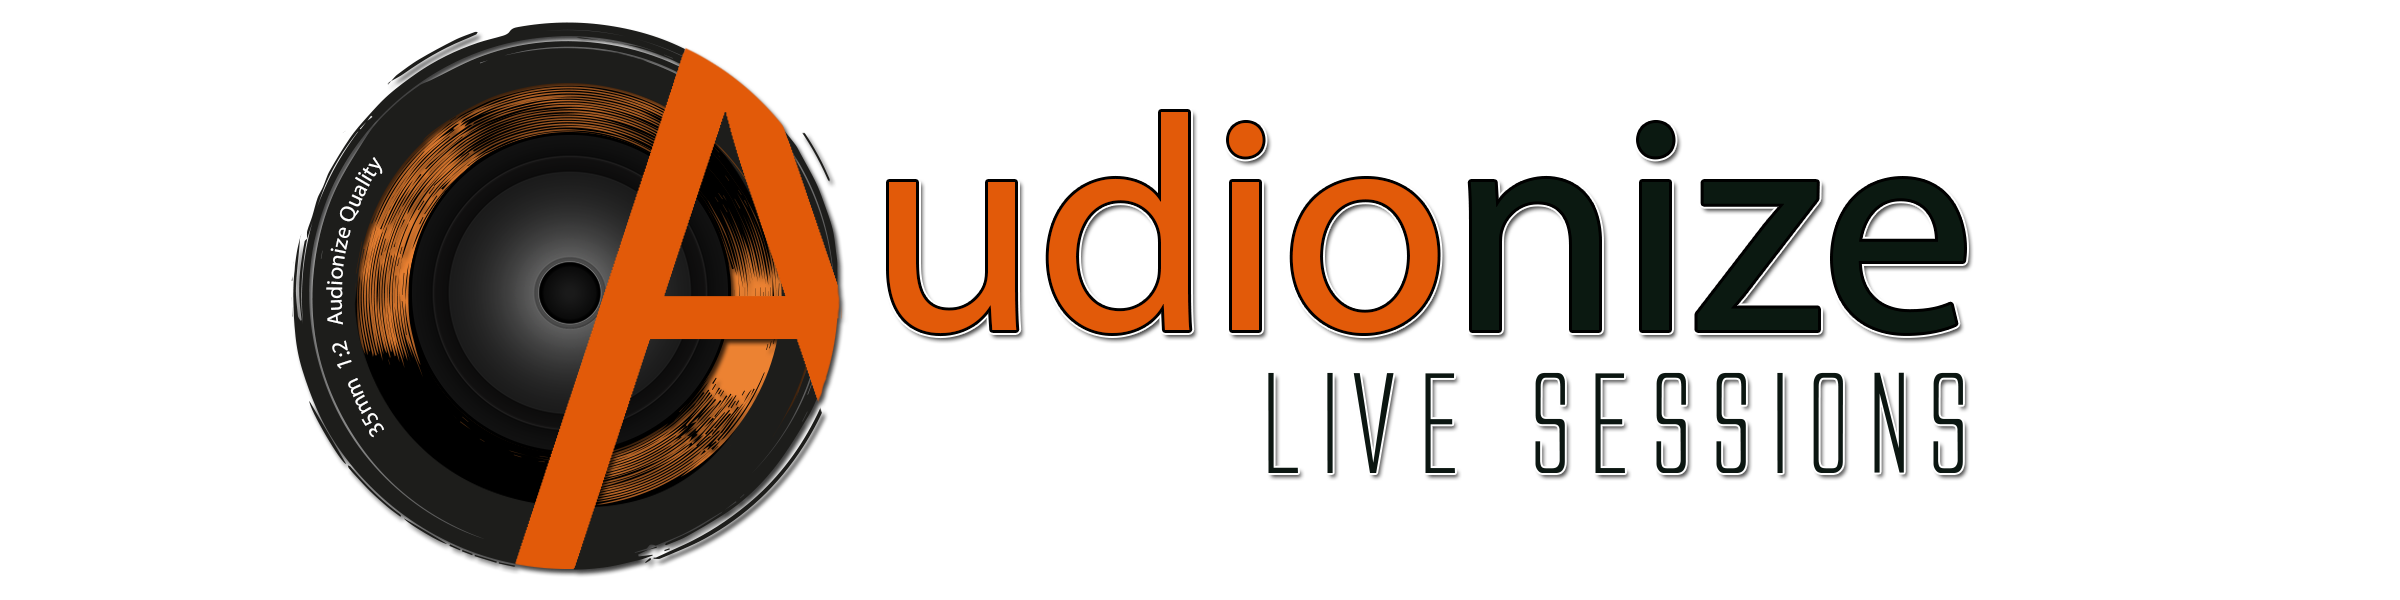 Audionize Live Sessions